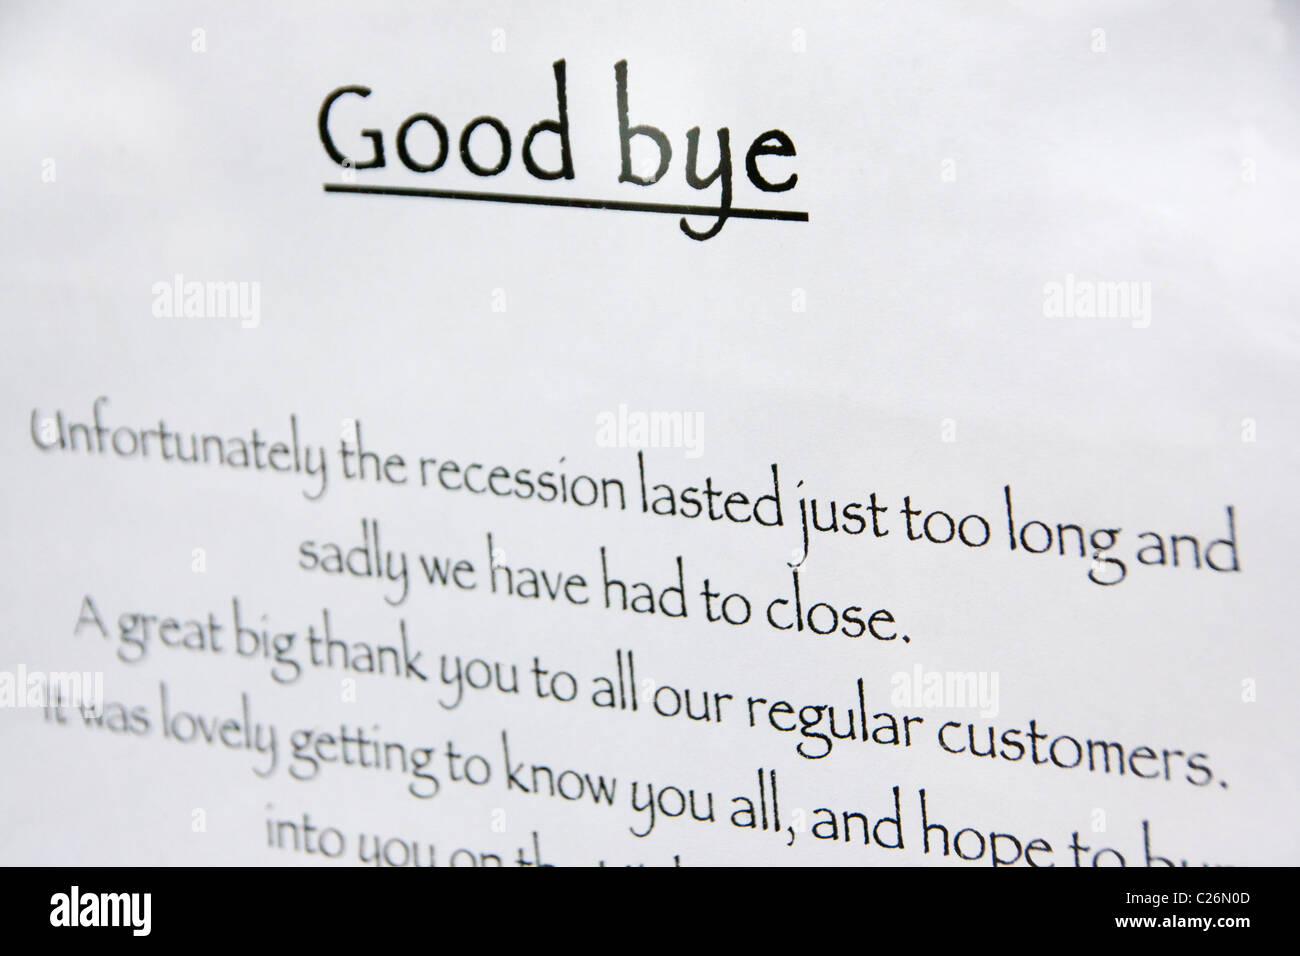 Shop closure notice Closure due to lingering recession and economic crisis / downturn London England UK - Stock Image